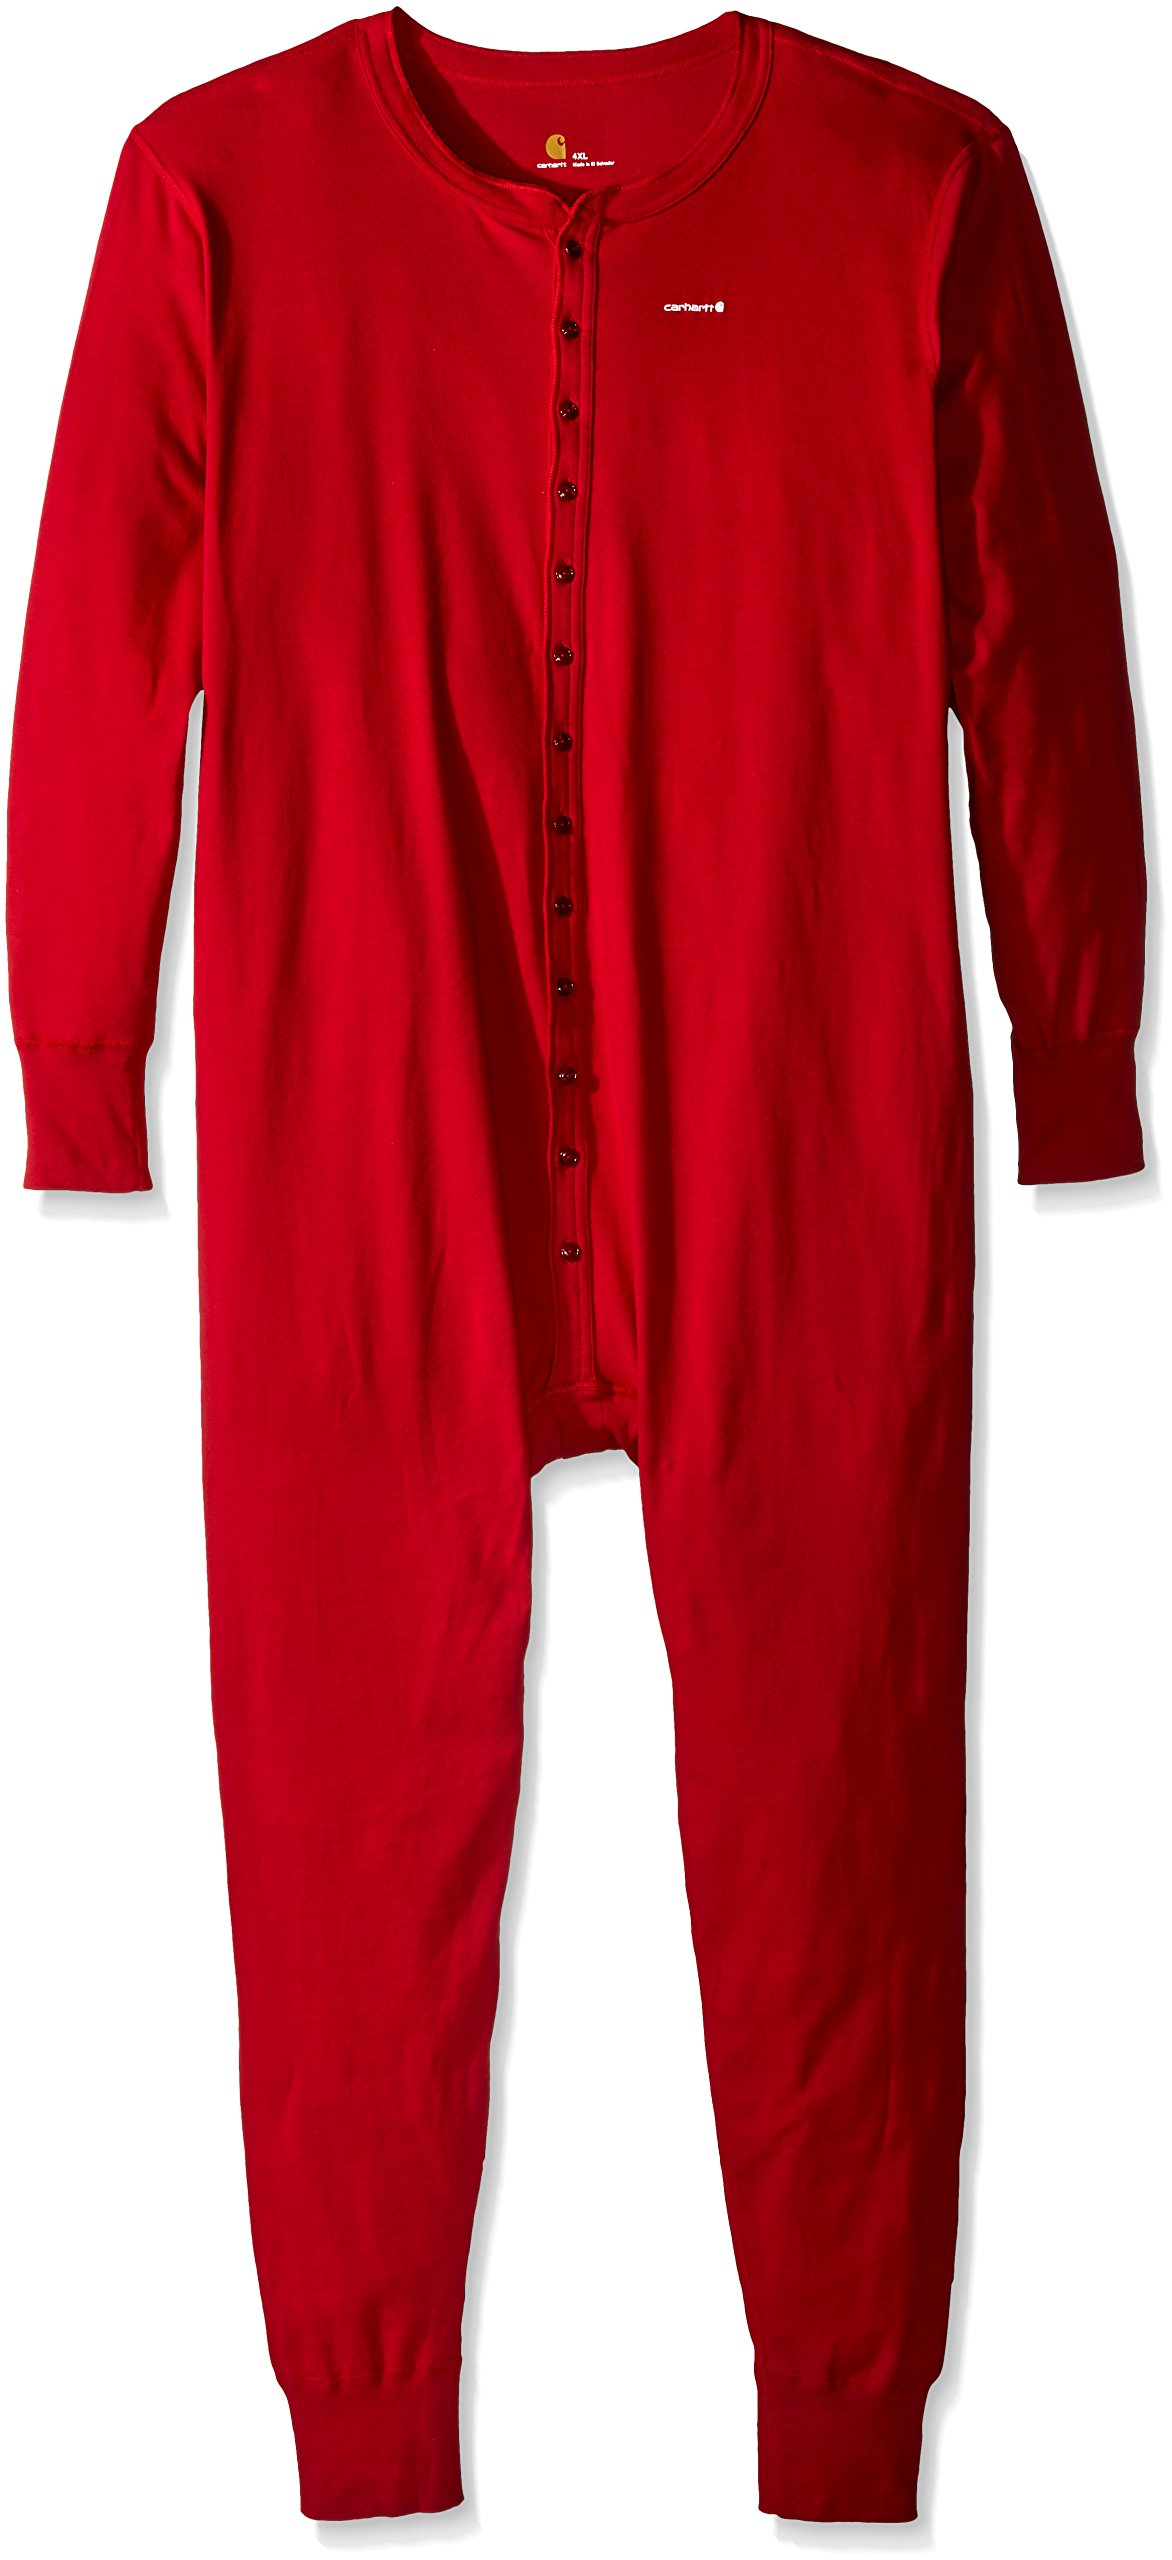 Carhartt Men's Big Big & Tall Midweight Cotton Union Suit, Red, 3X-Large/Tall